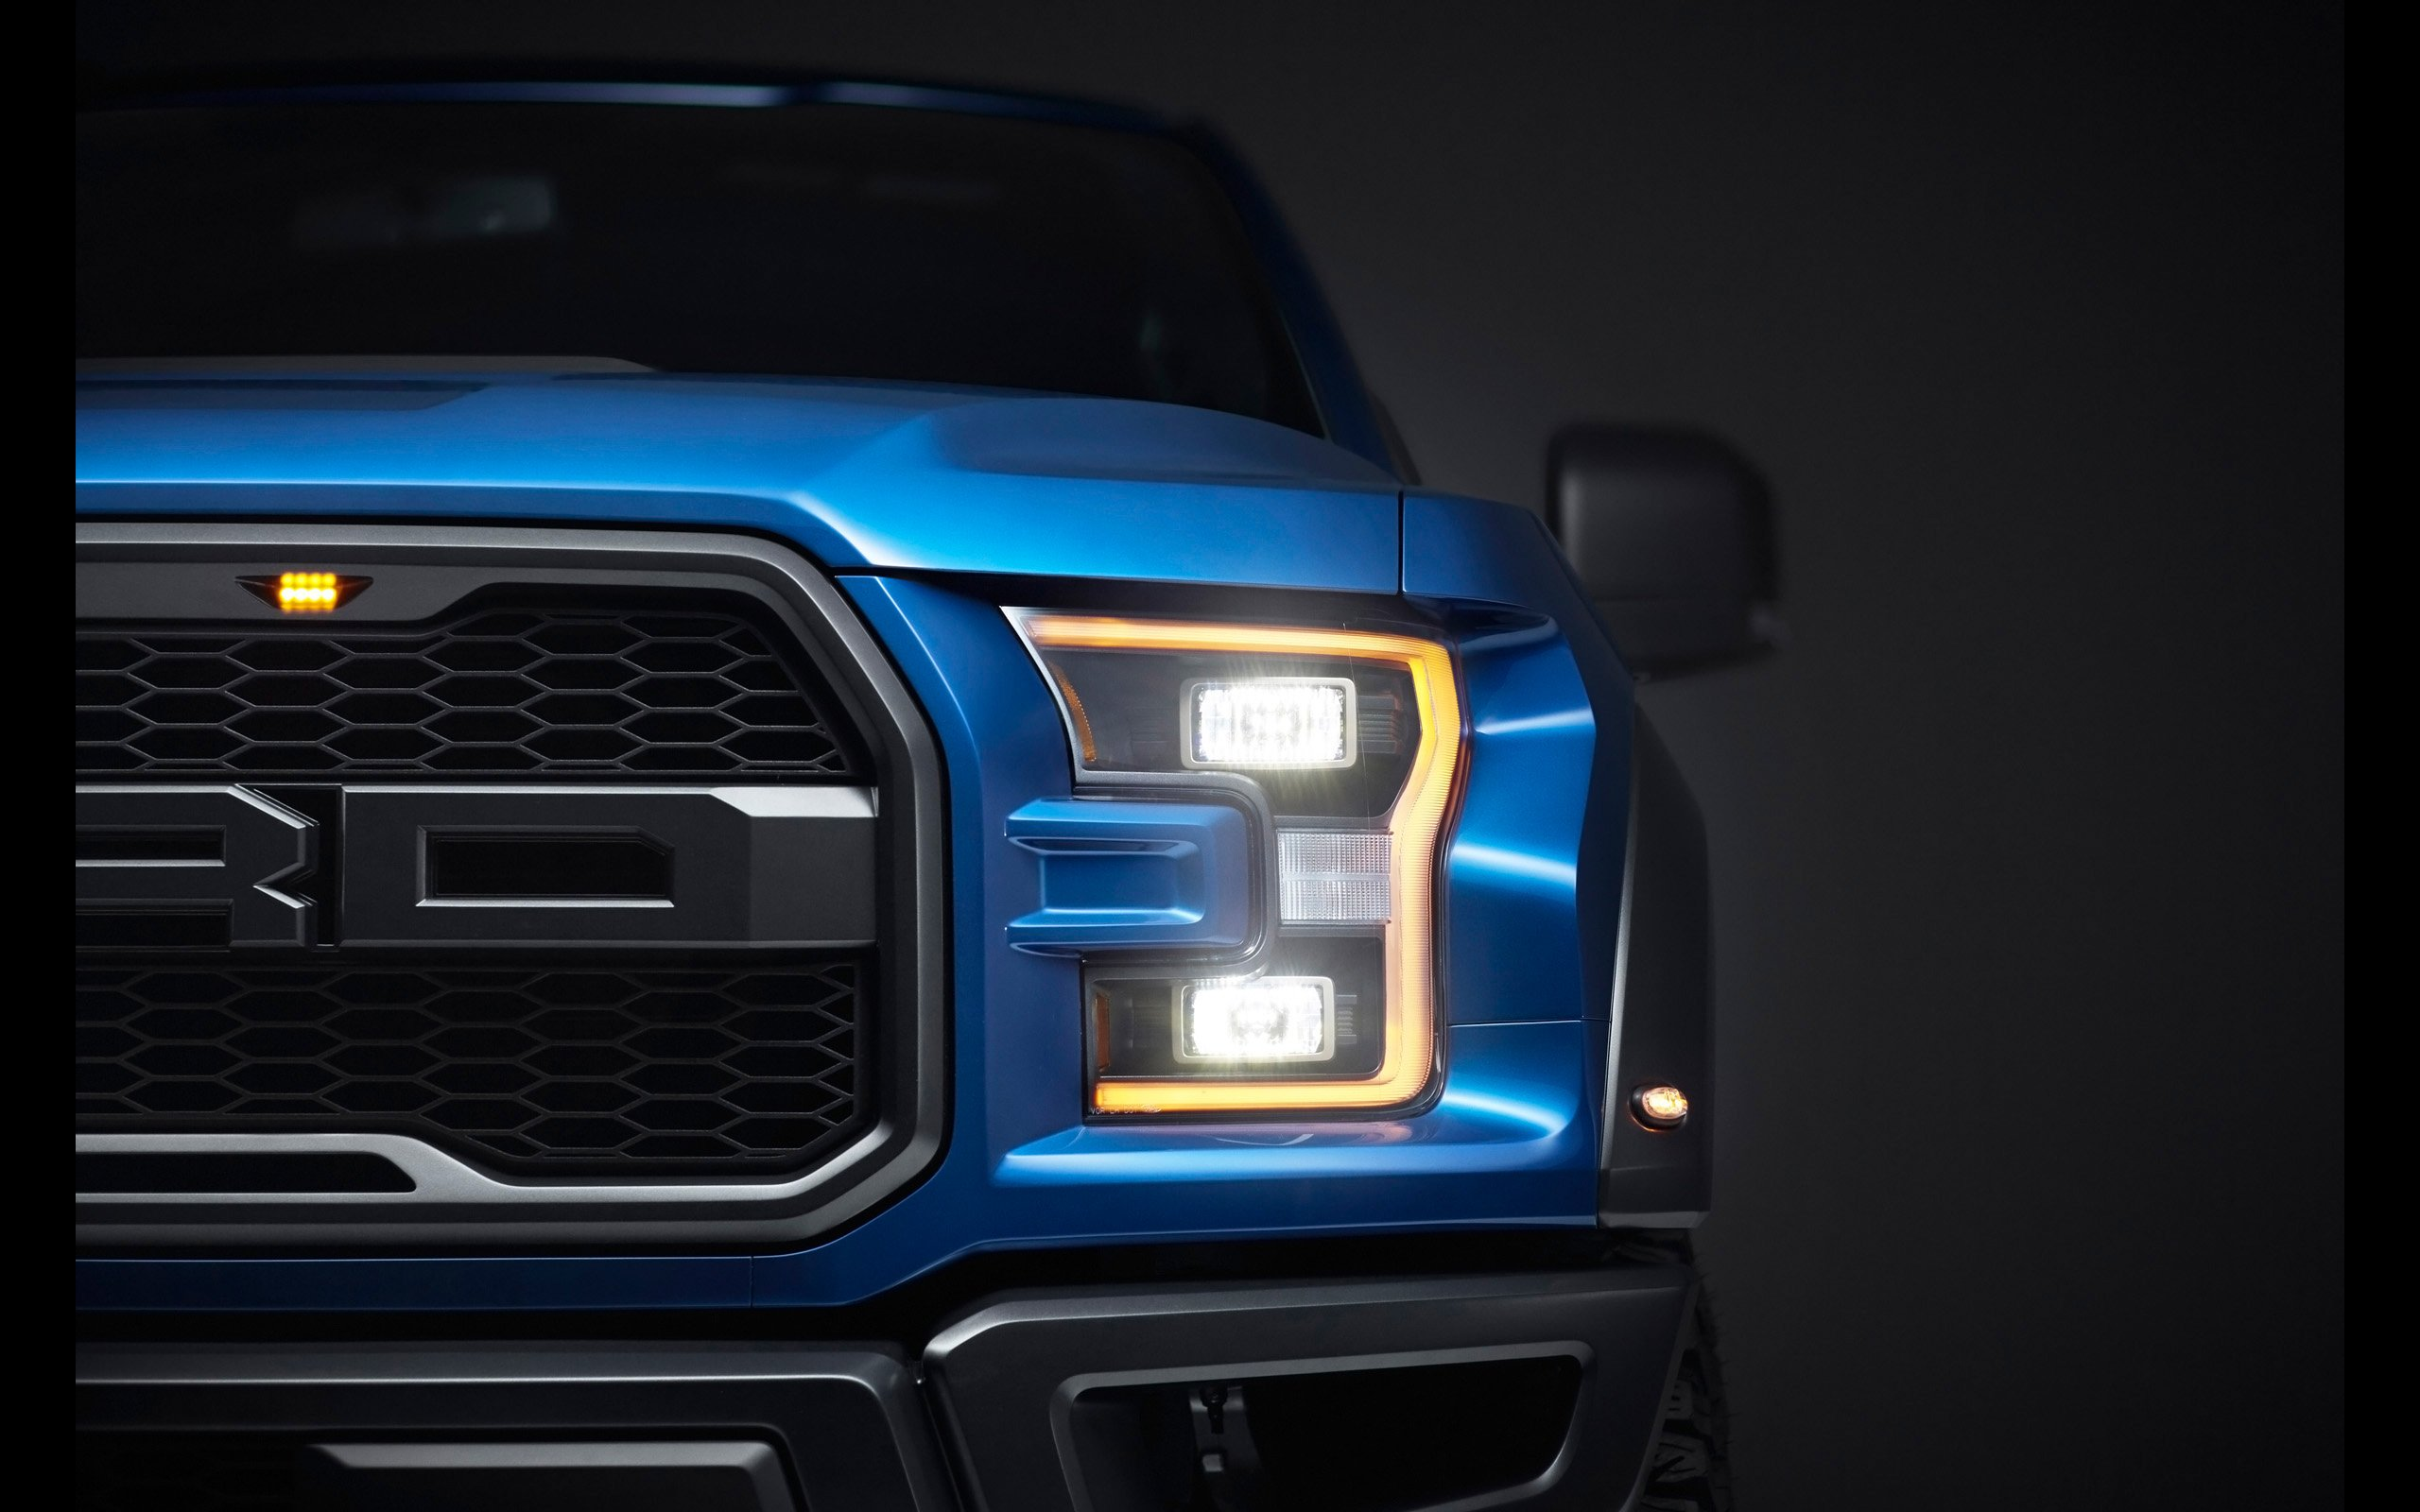 2017 ford f 150 raptor muscle pickup f150 awd wallpaper 2017 ford f 150 raptor muscle pickup f150 awd wallpaper 2560x1600 600750 wallpaperup voltagebd Choice Image